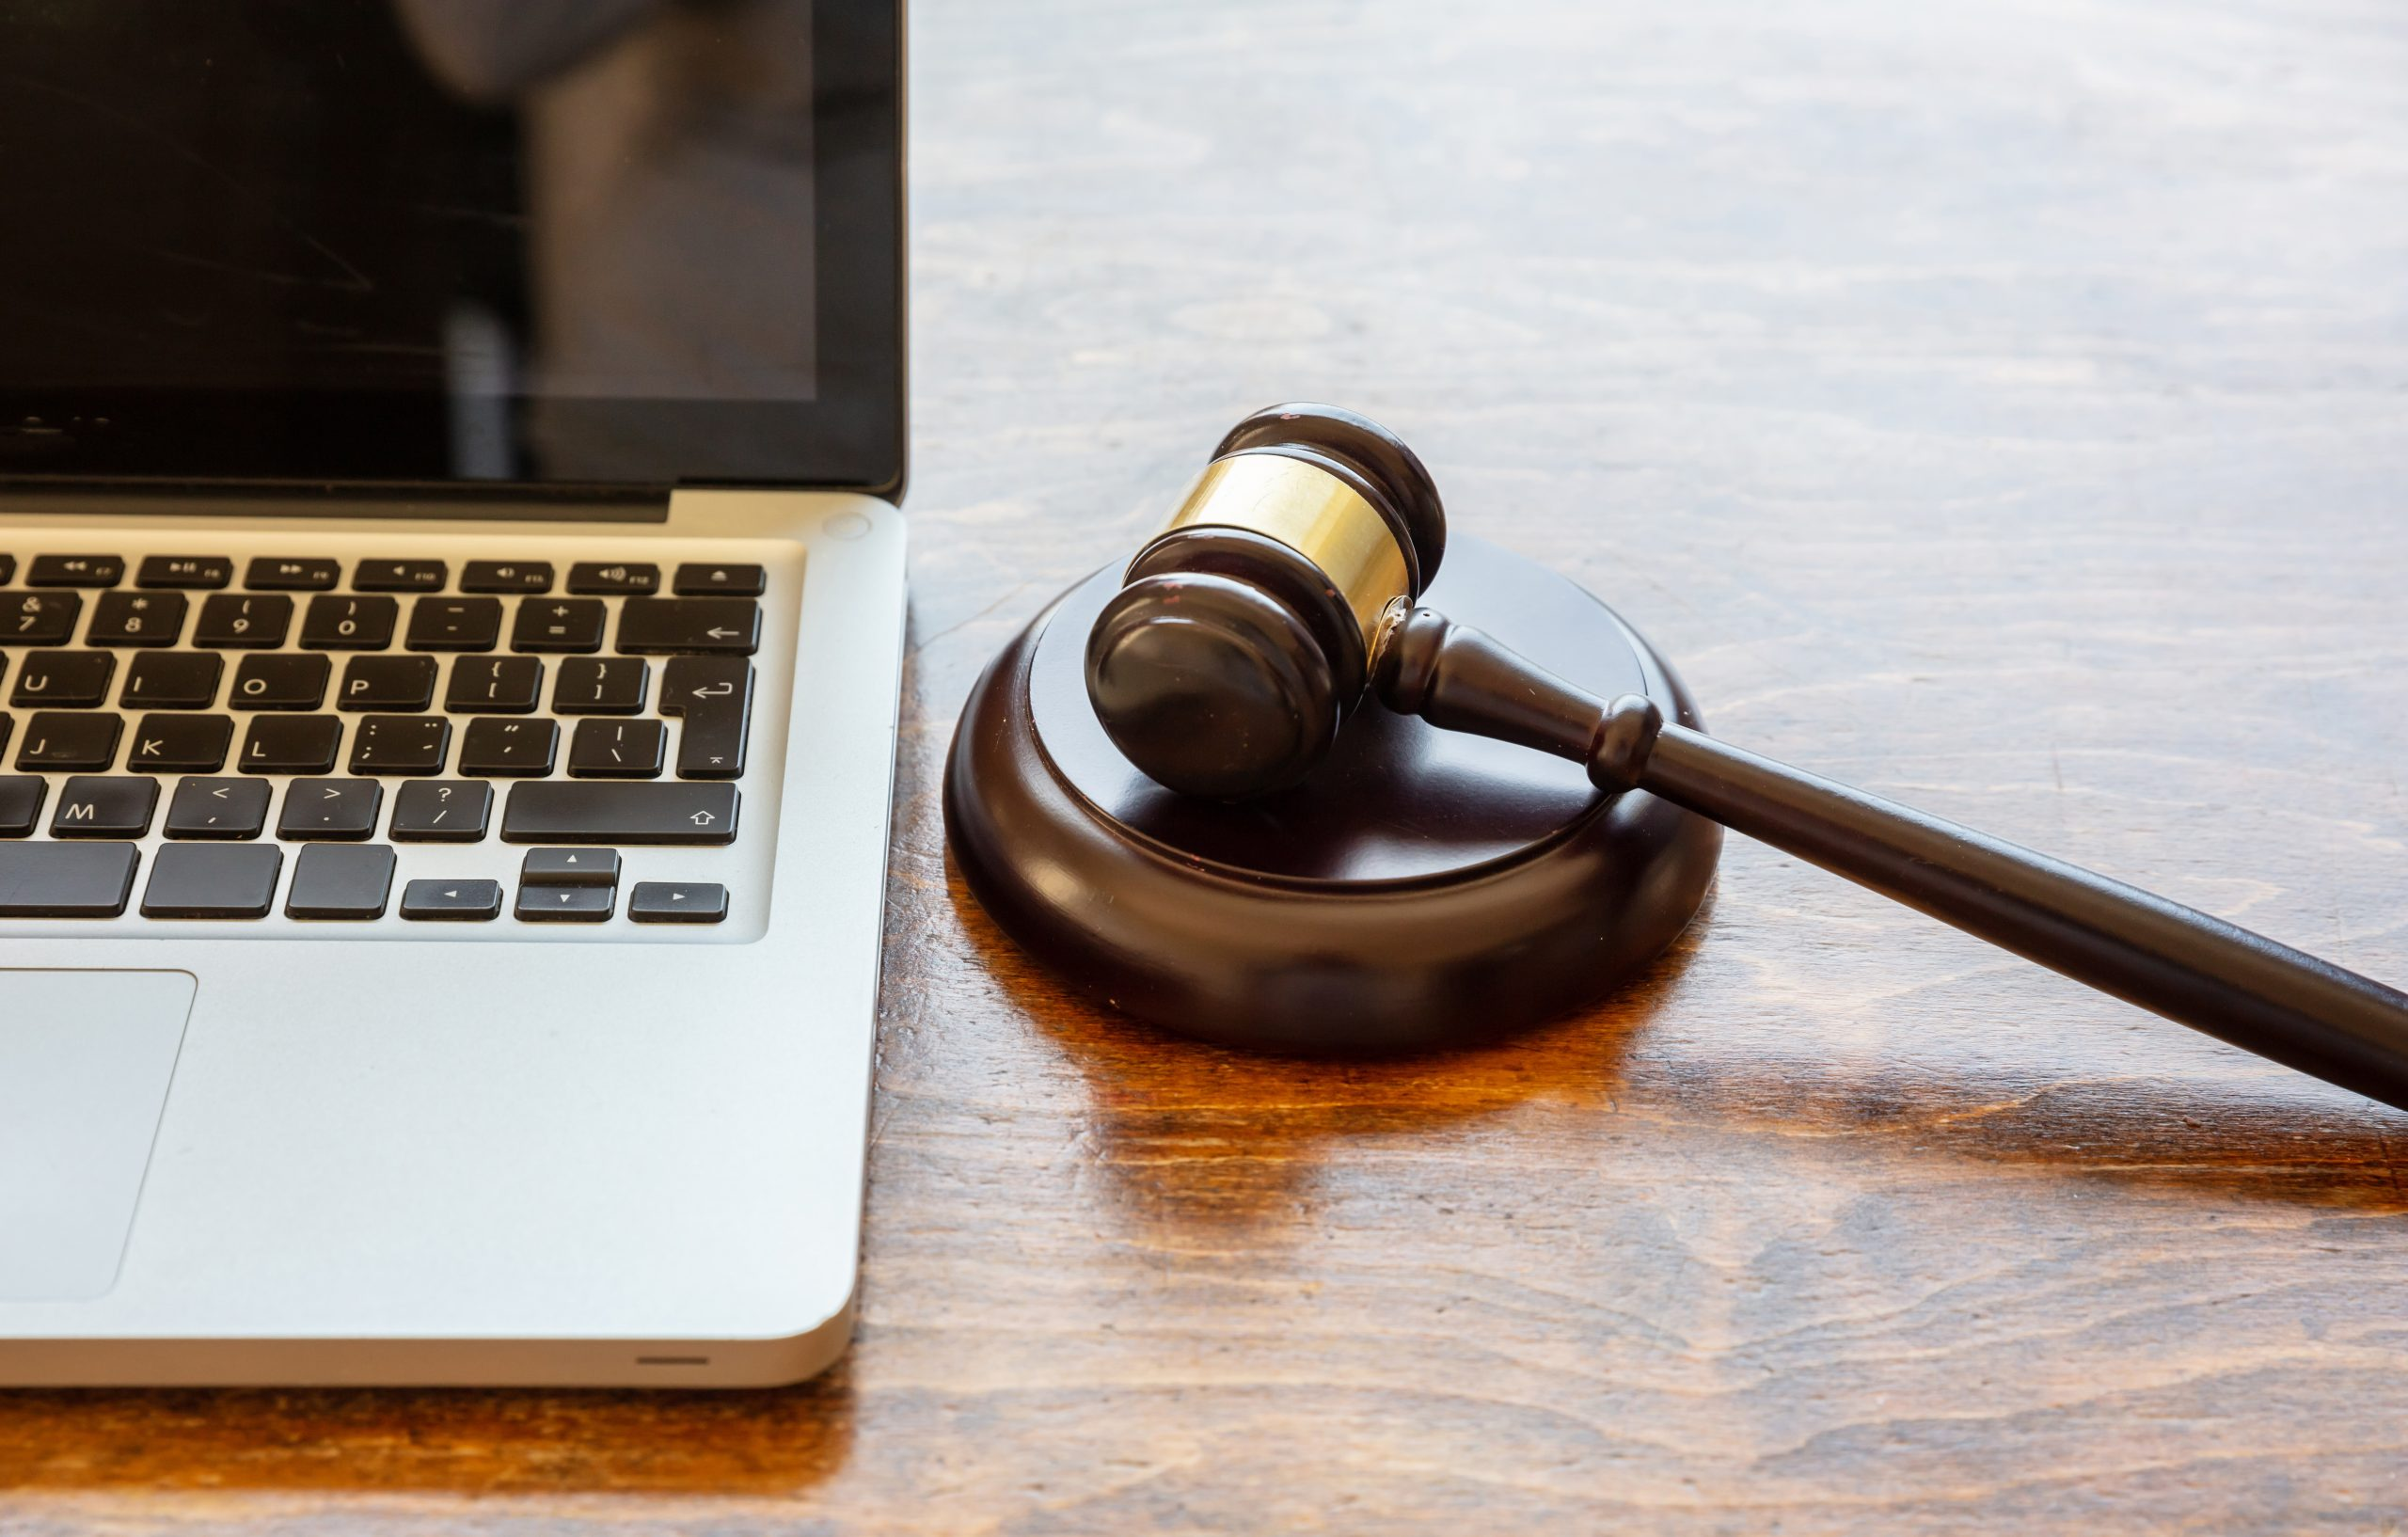 Most court proceedings are expected to stay virtual through 2021